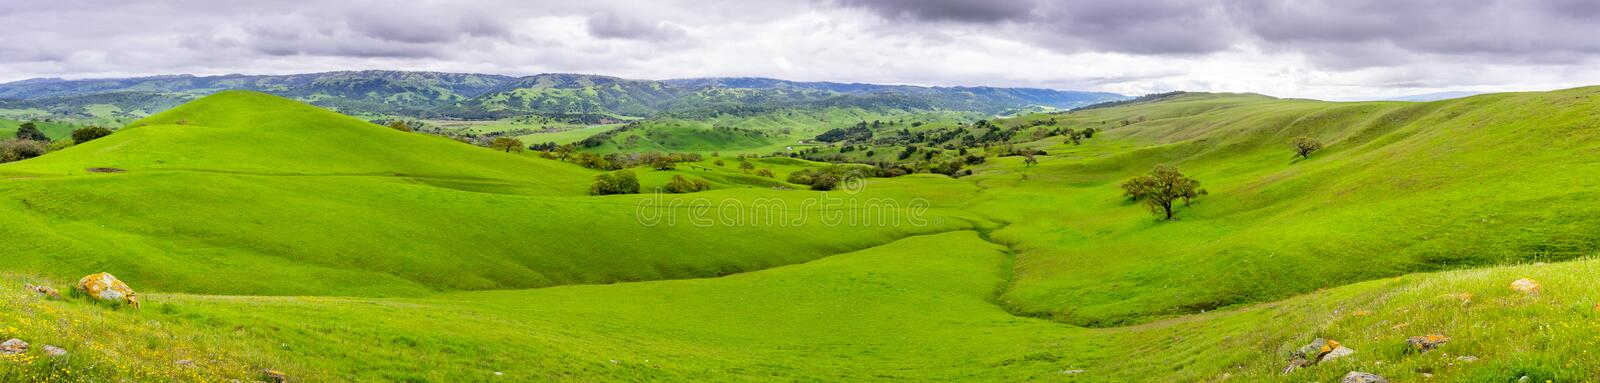 Beautiful panoramic view of green hills and valleys in south of San Jose, south San Francisco bay area, California stock images